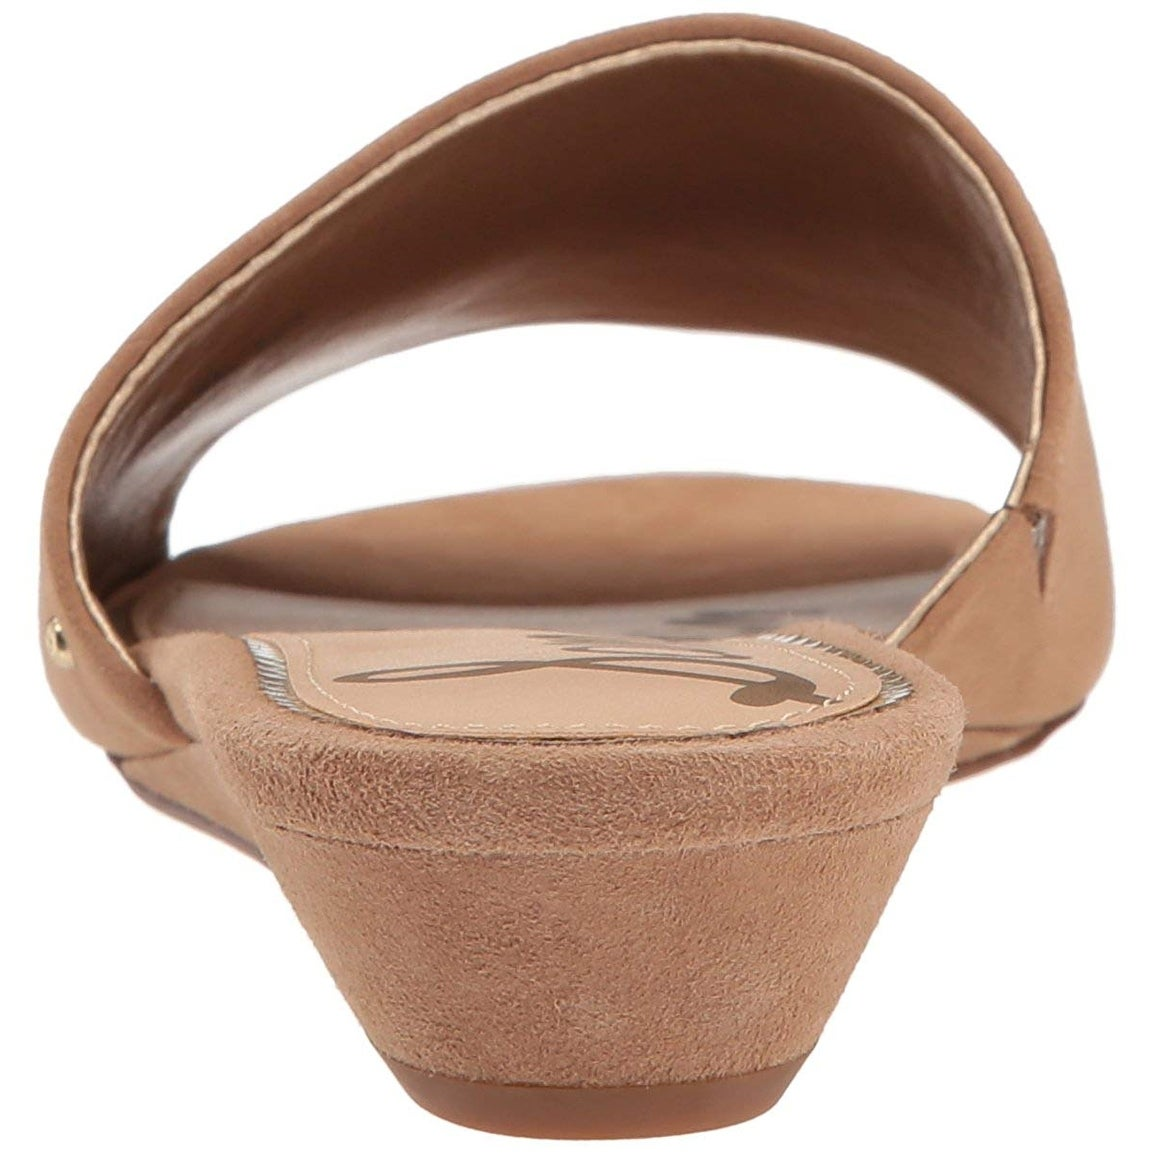 000756c8ce82 Shop Sam Edelman Womens Liliana Leather Open Toe Casual Slide Sandals -  Free Shipping On Orders Over  45 - Overstock - 27099997